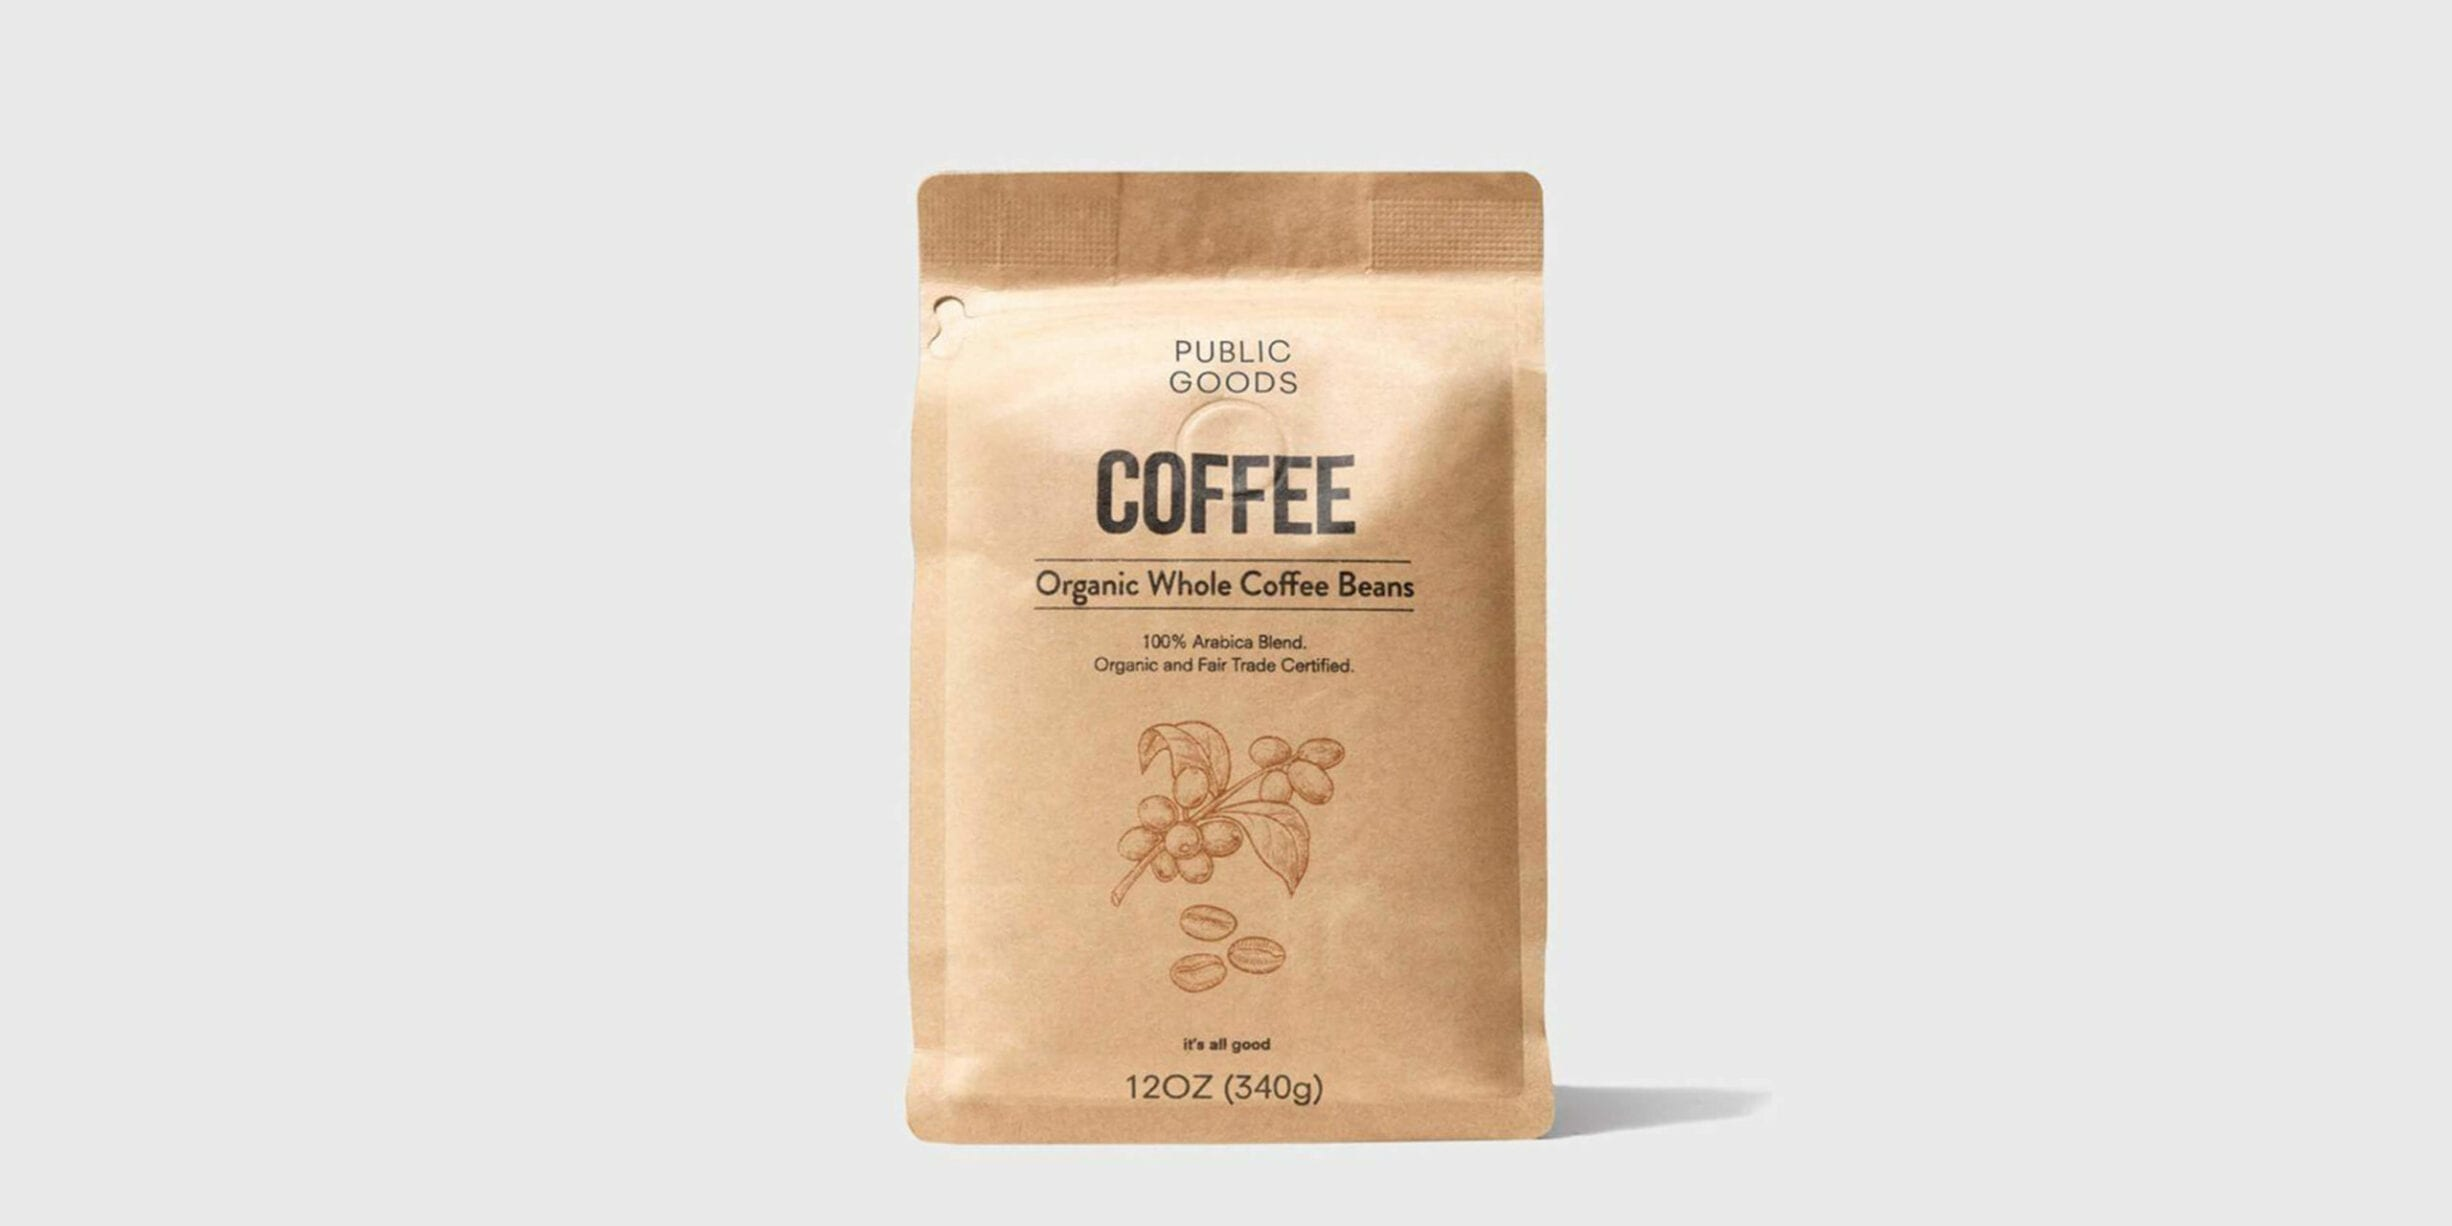 bag of public goods coffee beans